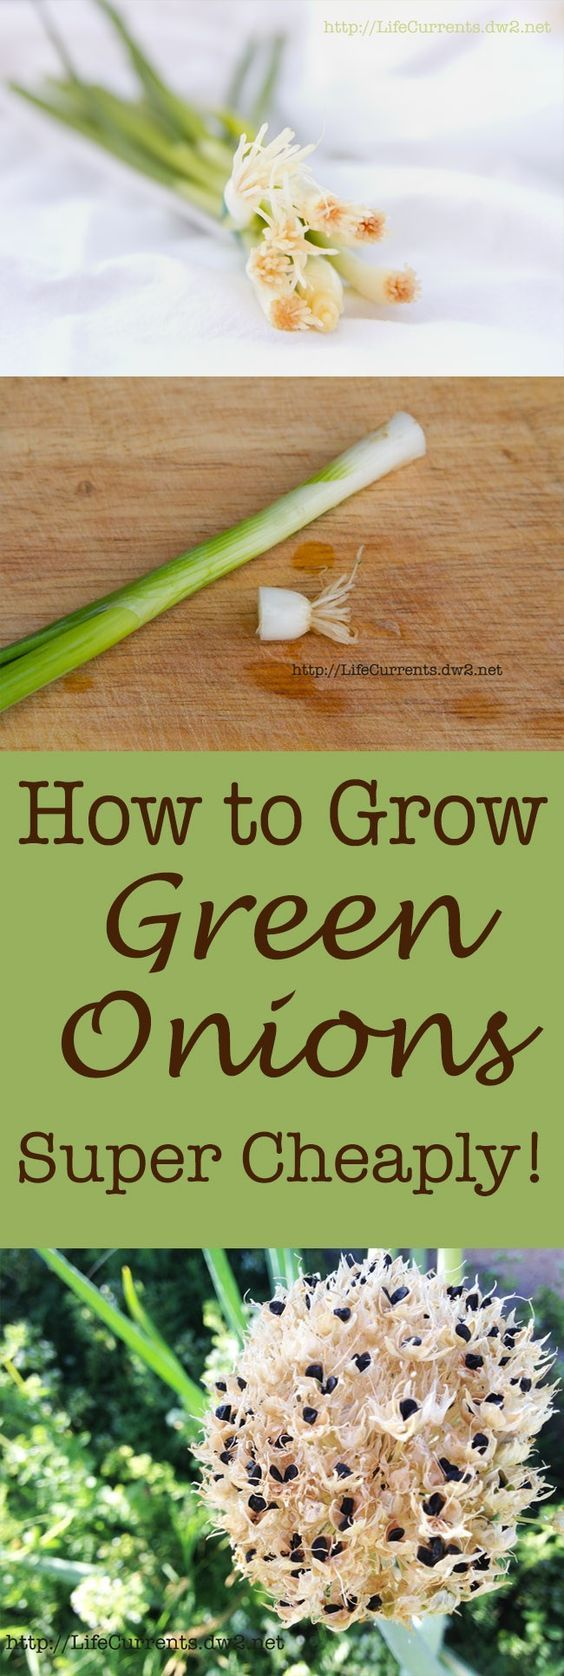 How to regrow green onions #vegetable_gardening